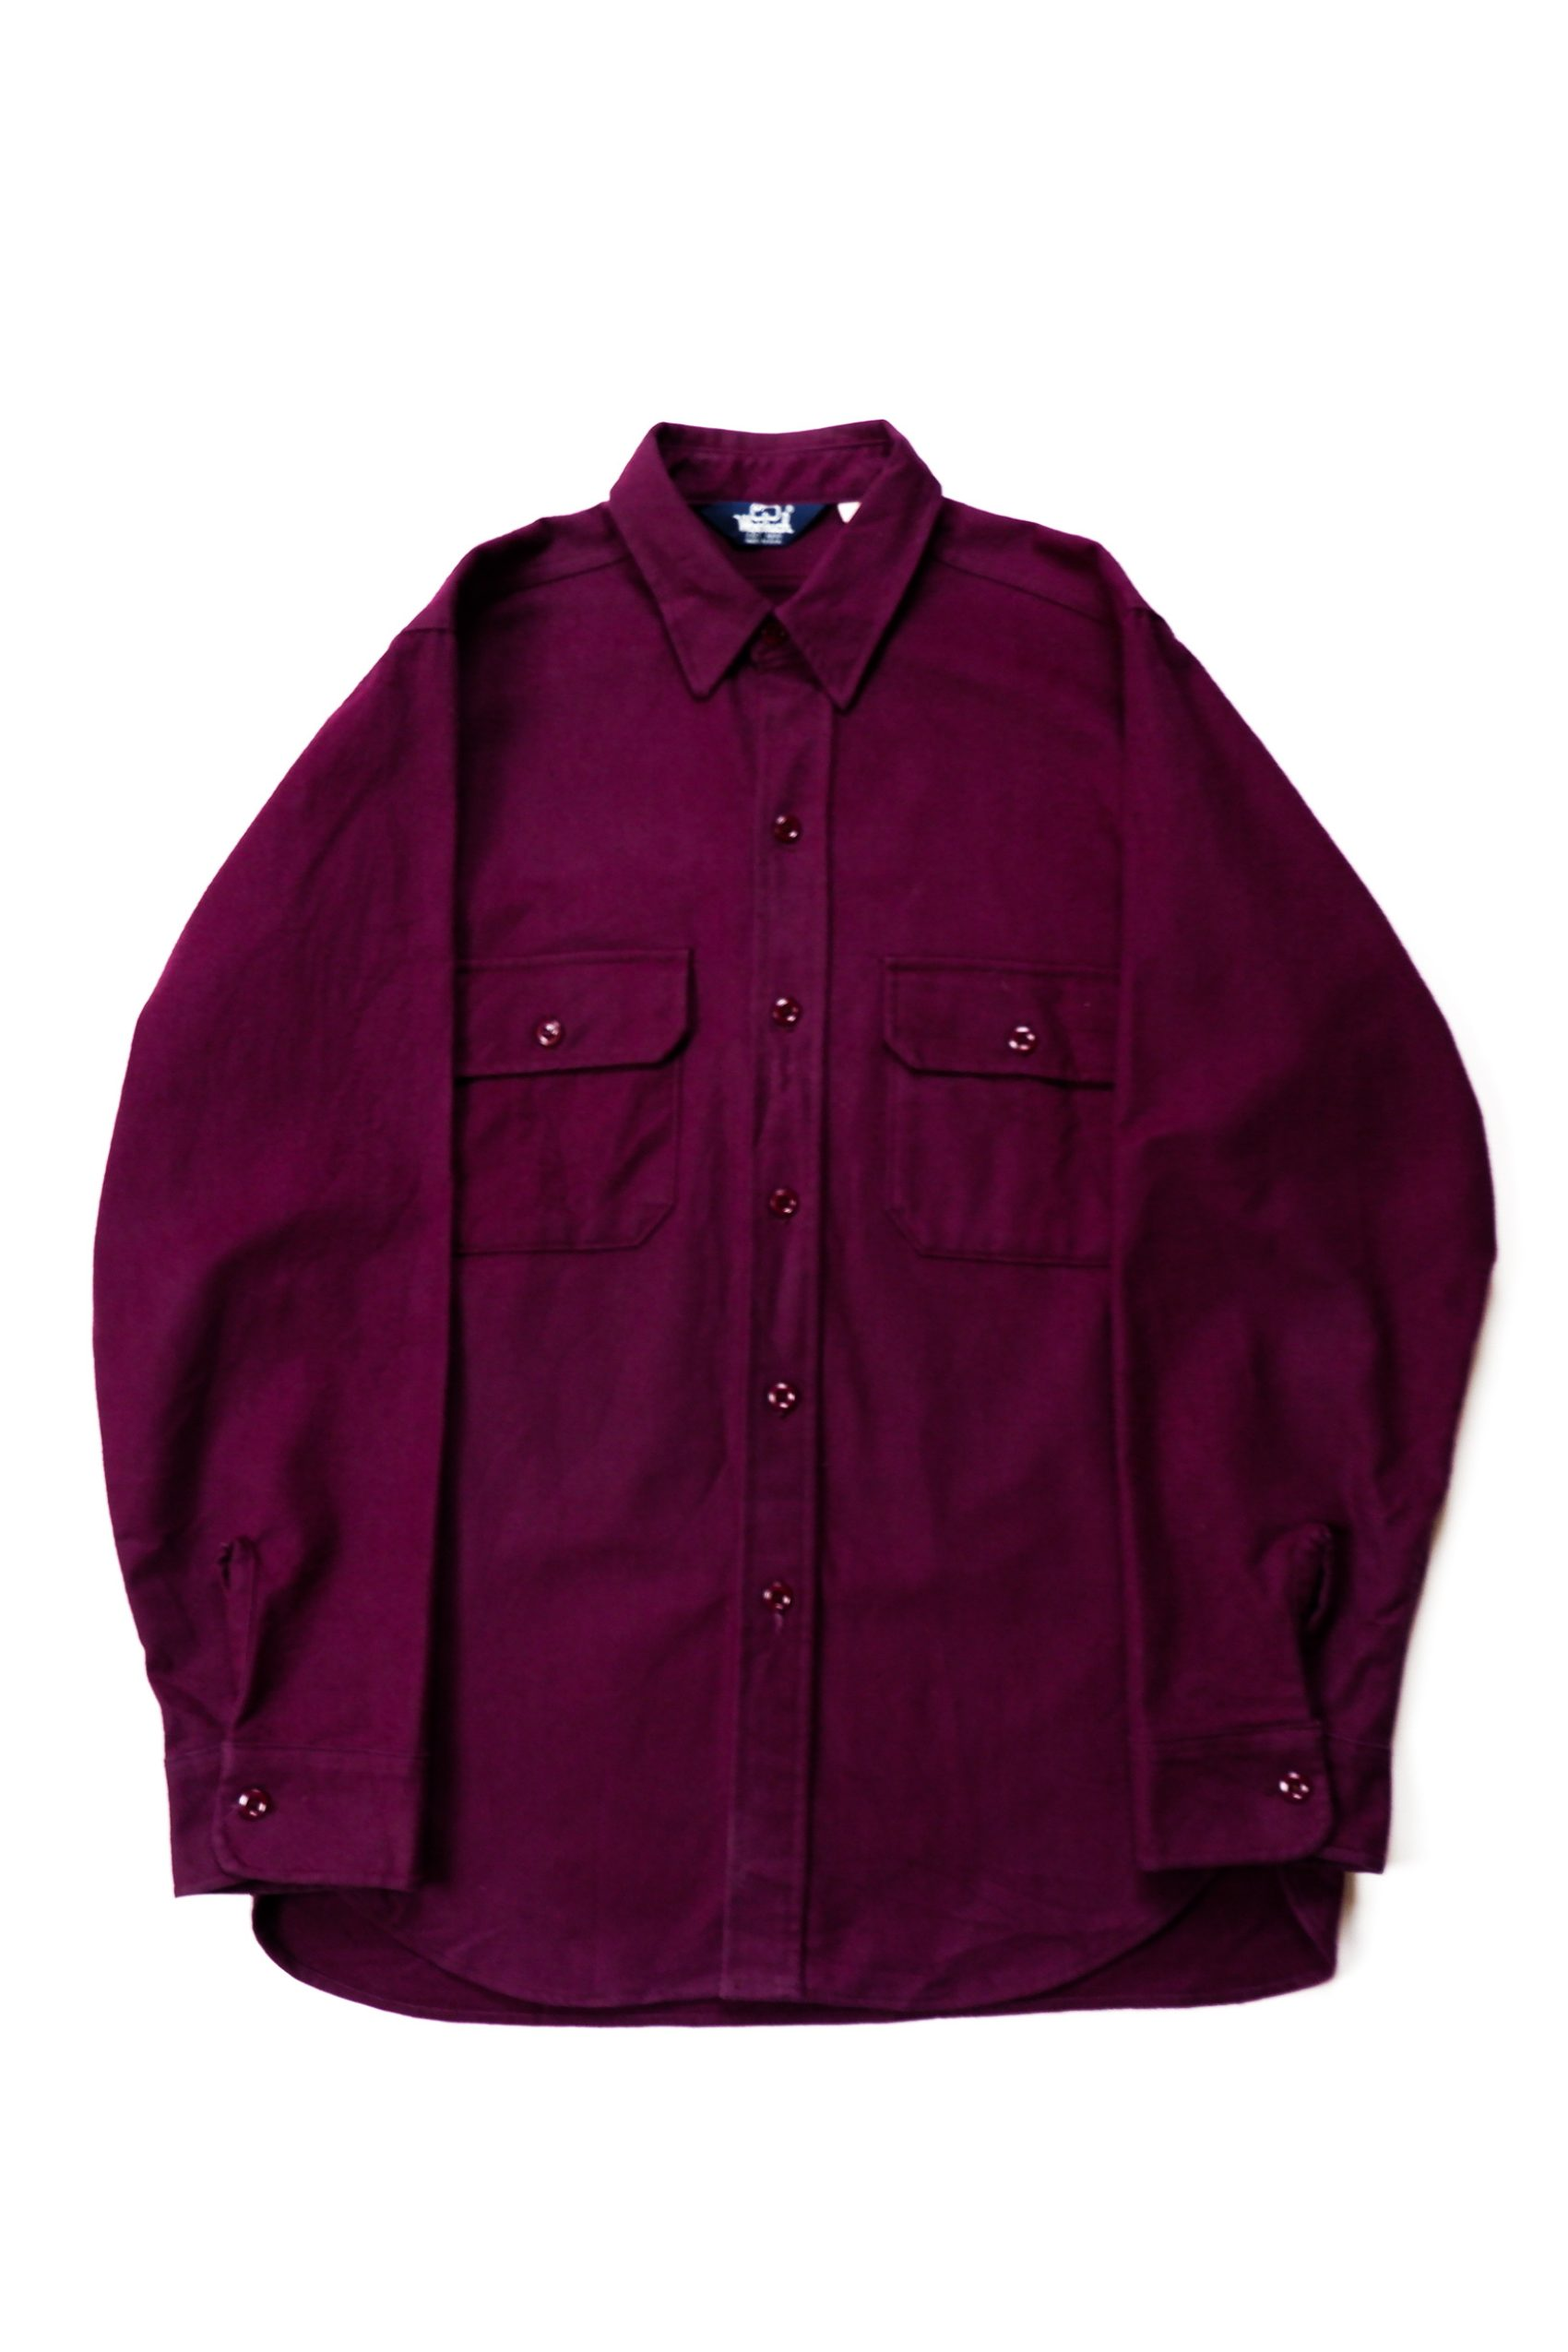 WOOLRICH Made In USA CPO JACKET